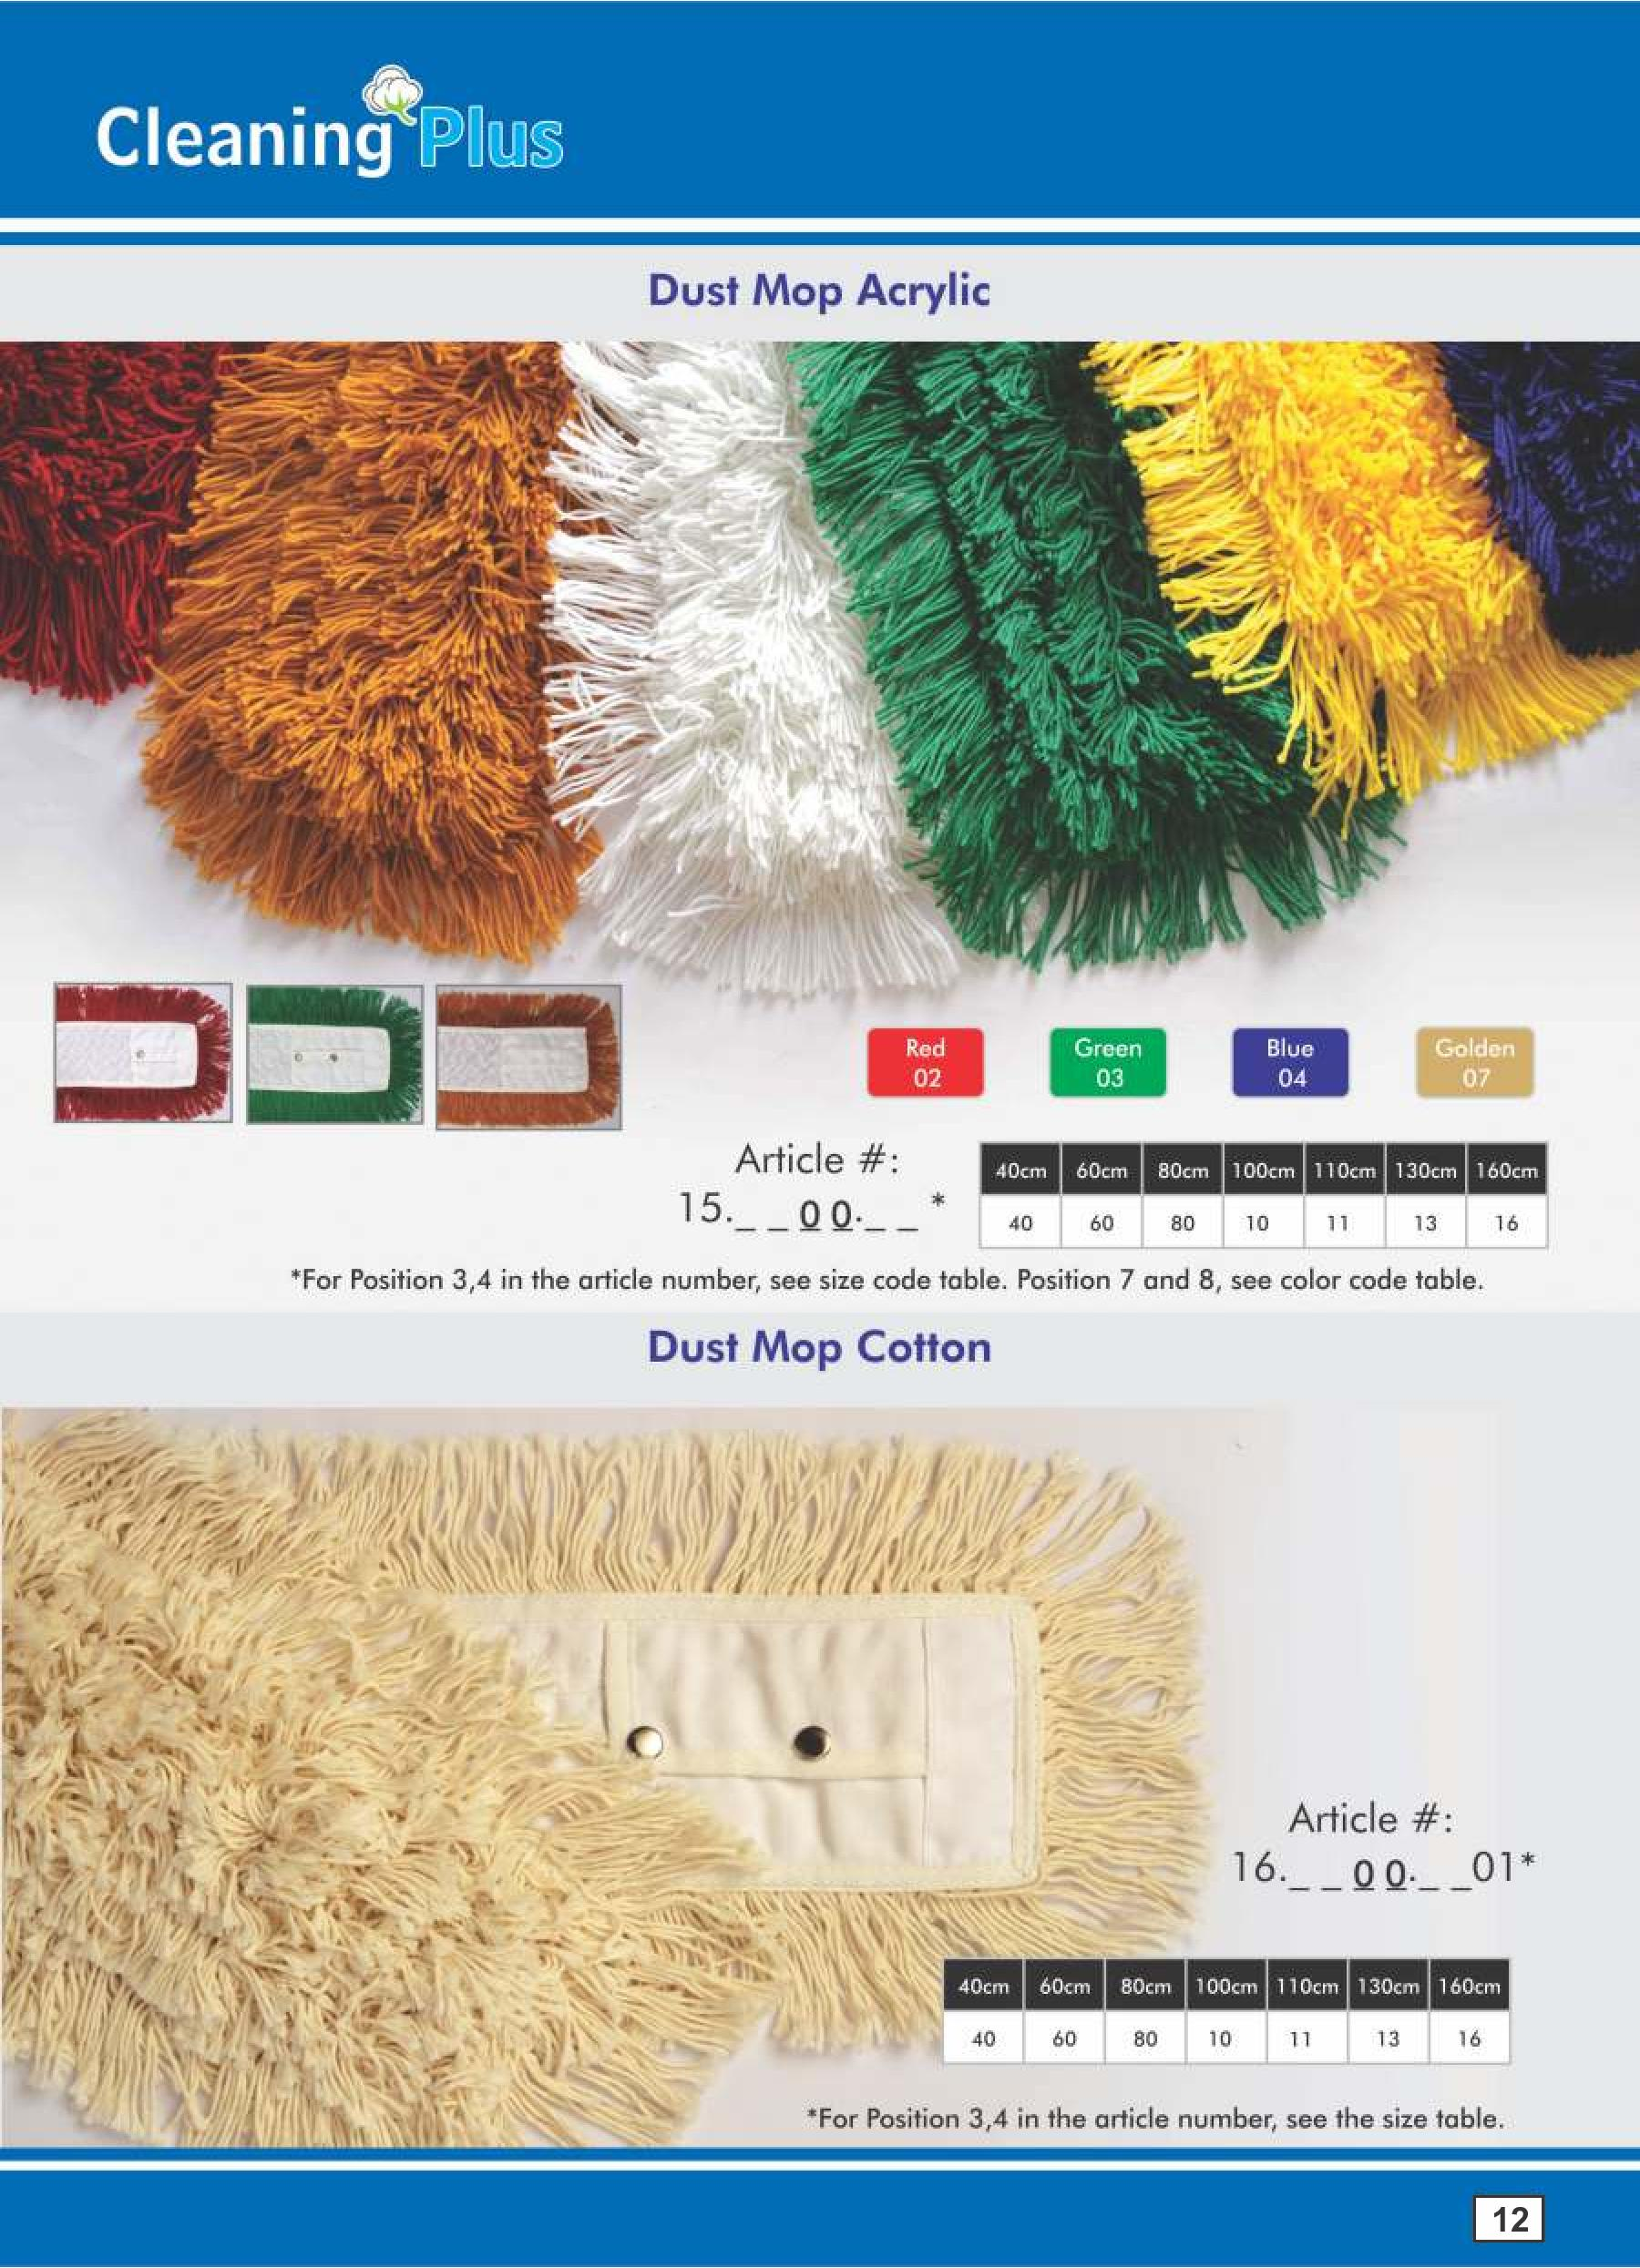 Dust Mop acrylic, available in all colors